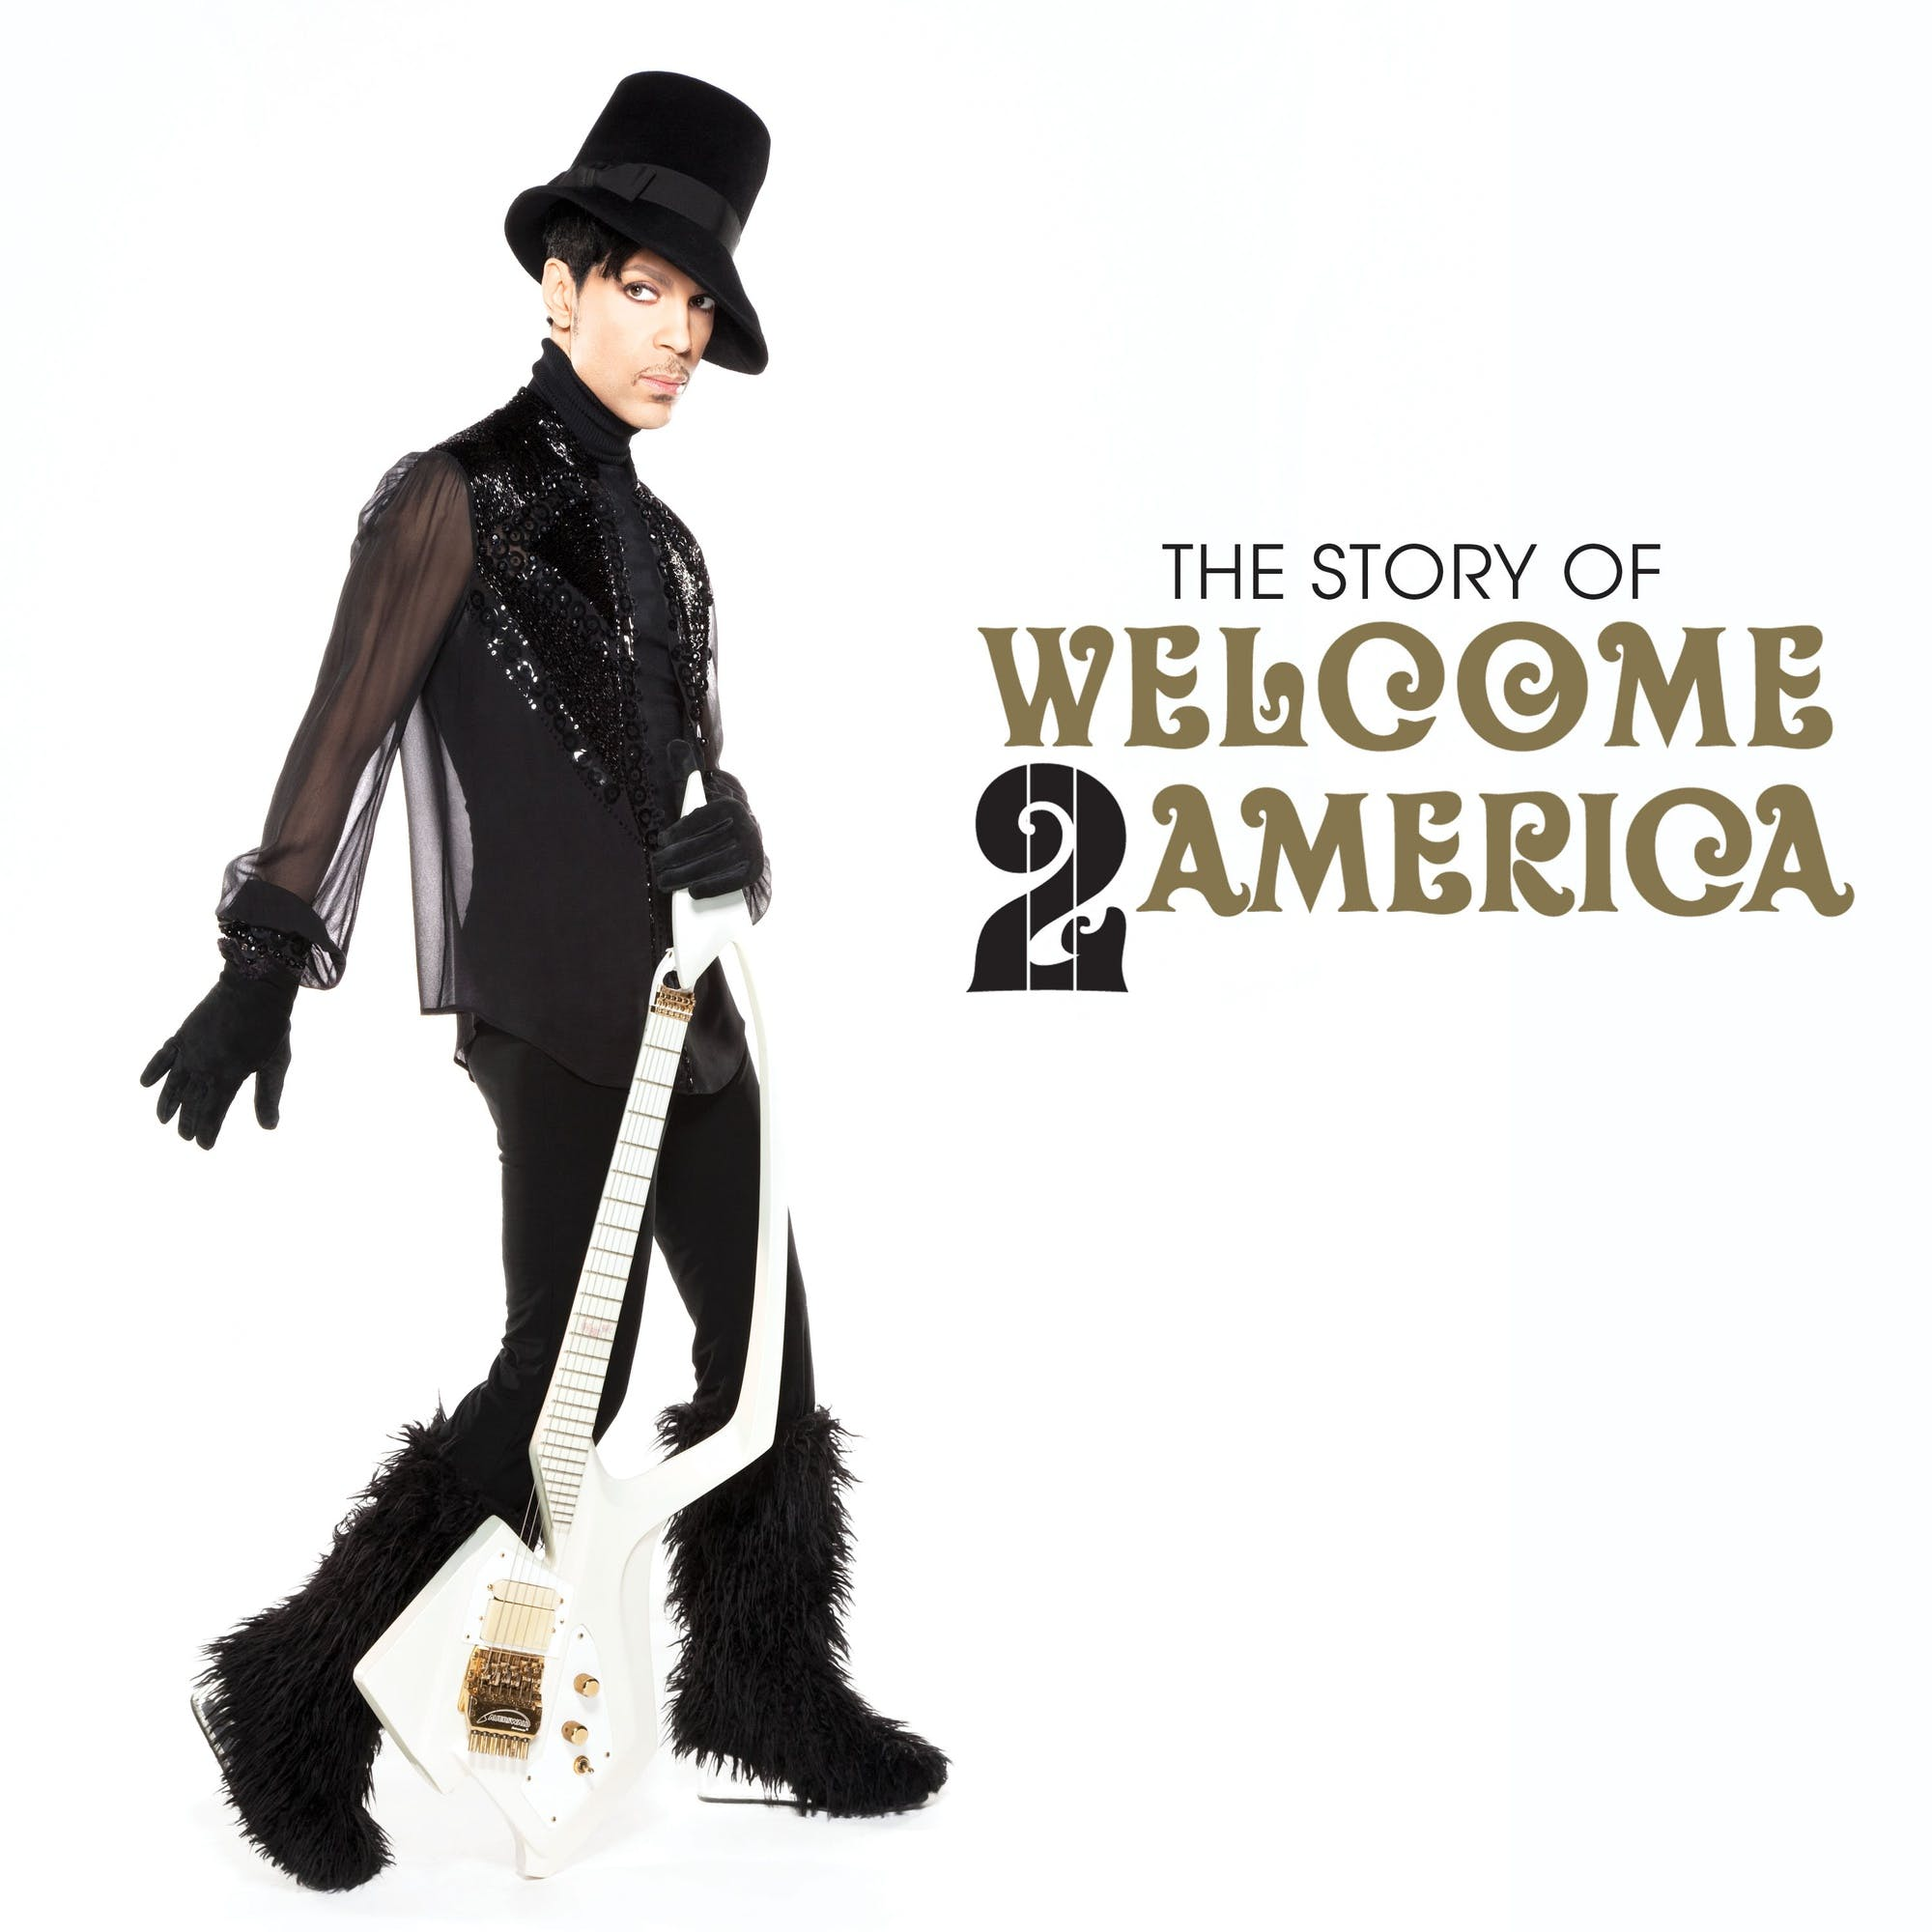 The Story of Welcome 2 America, Episode 4: We Got 2 Let the Funk Unwind